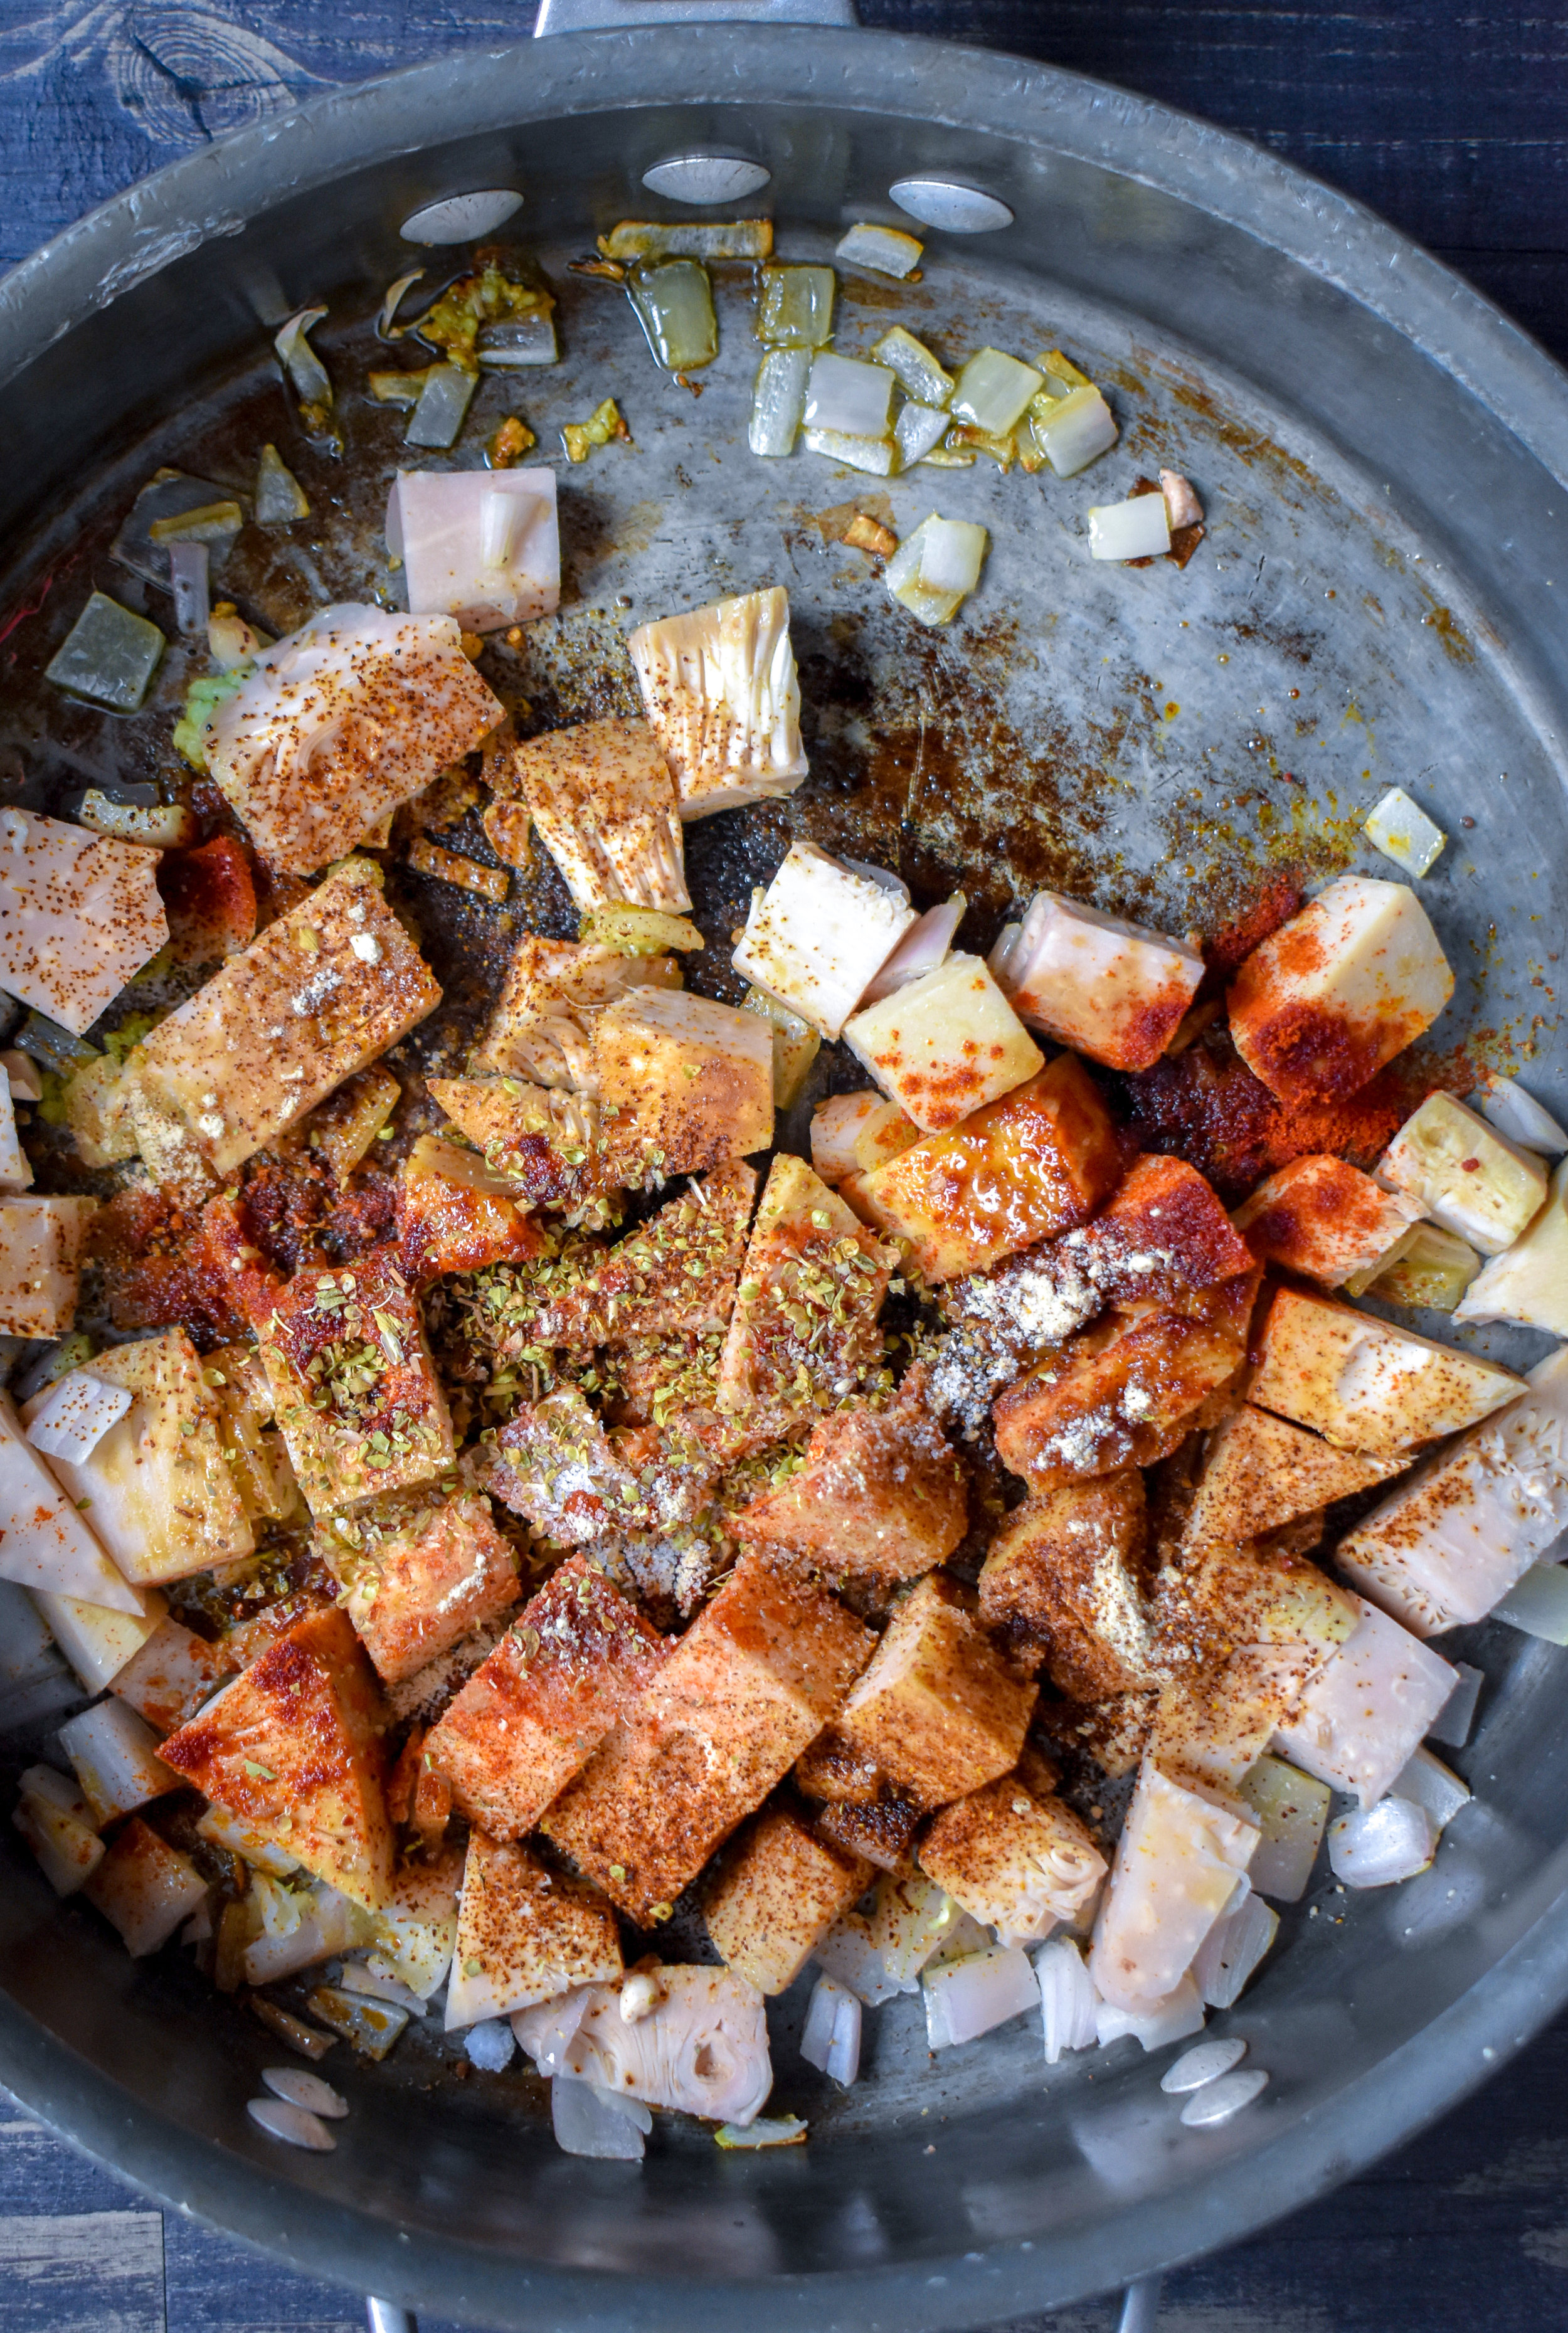 1. To start, add chopped shallot + garlic to pan with oil. Cook over medium heat for 5 minutes. Add diced jackfruit with BBQ seasoning, coat well, and cook for another 60 seconds.